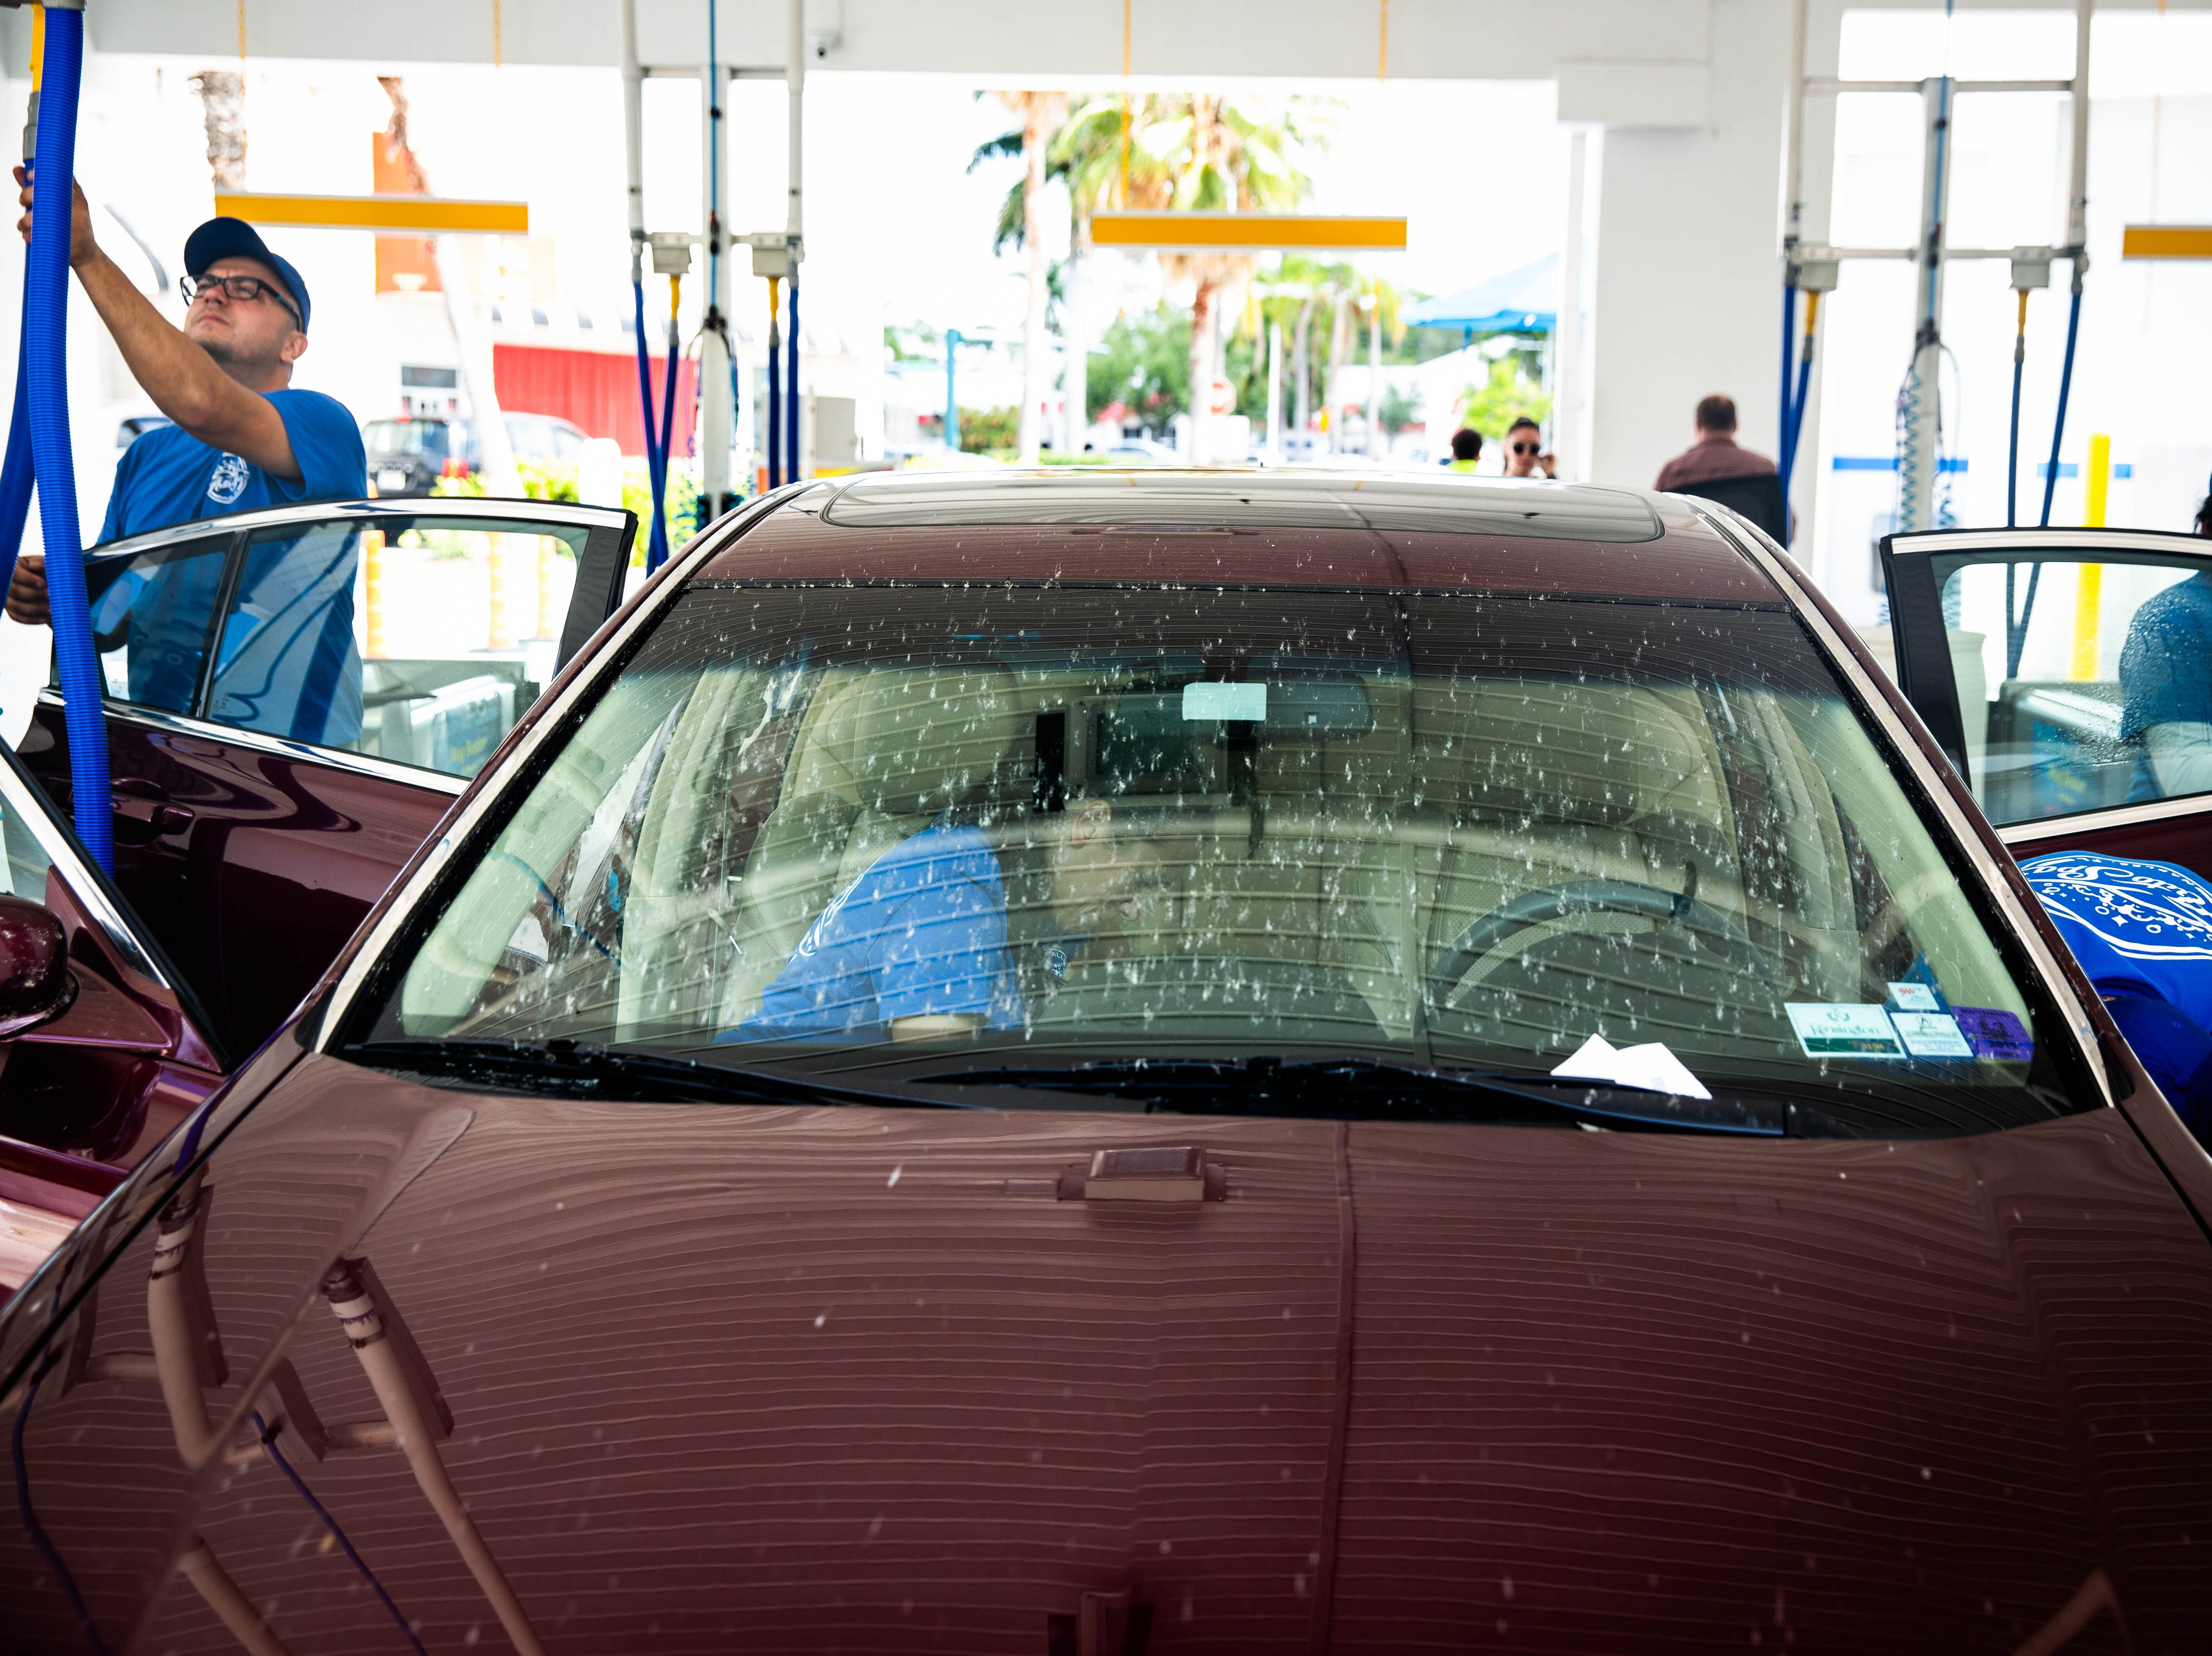 """Employees clean a line of cars at the Auto Spa car wash in Naples on Friday, May 10, 2019. The car wash has been exceptionally busy due to the presence of lovebugs in Southwest Florida. """"It's the worst we've seen in 7 years,"""" said Operations Manager Janine Ierardi."""